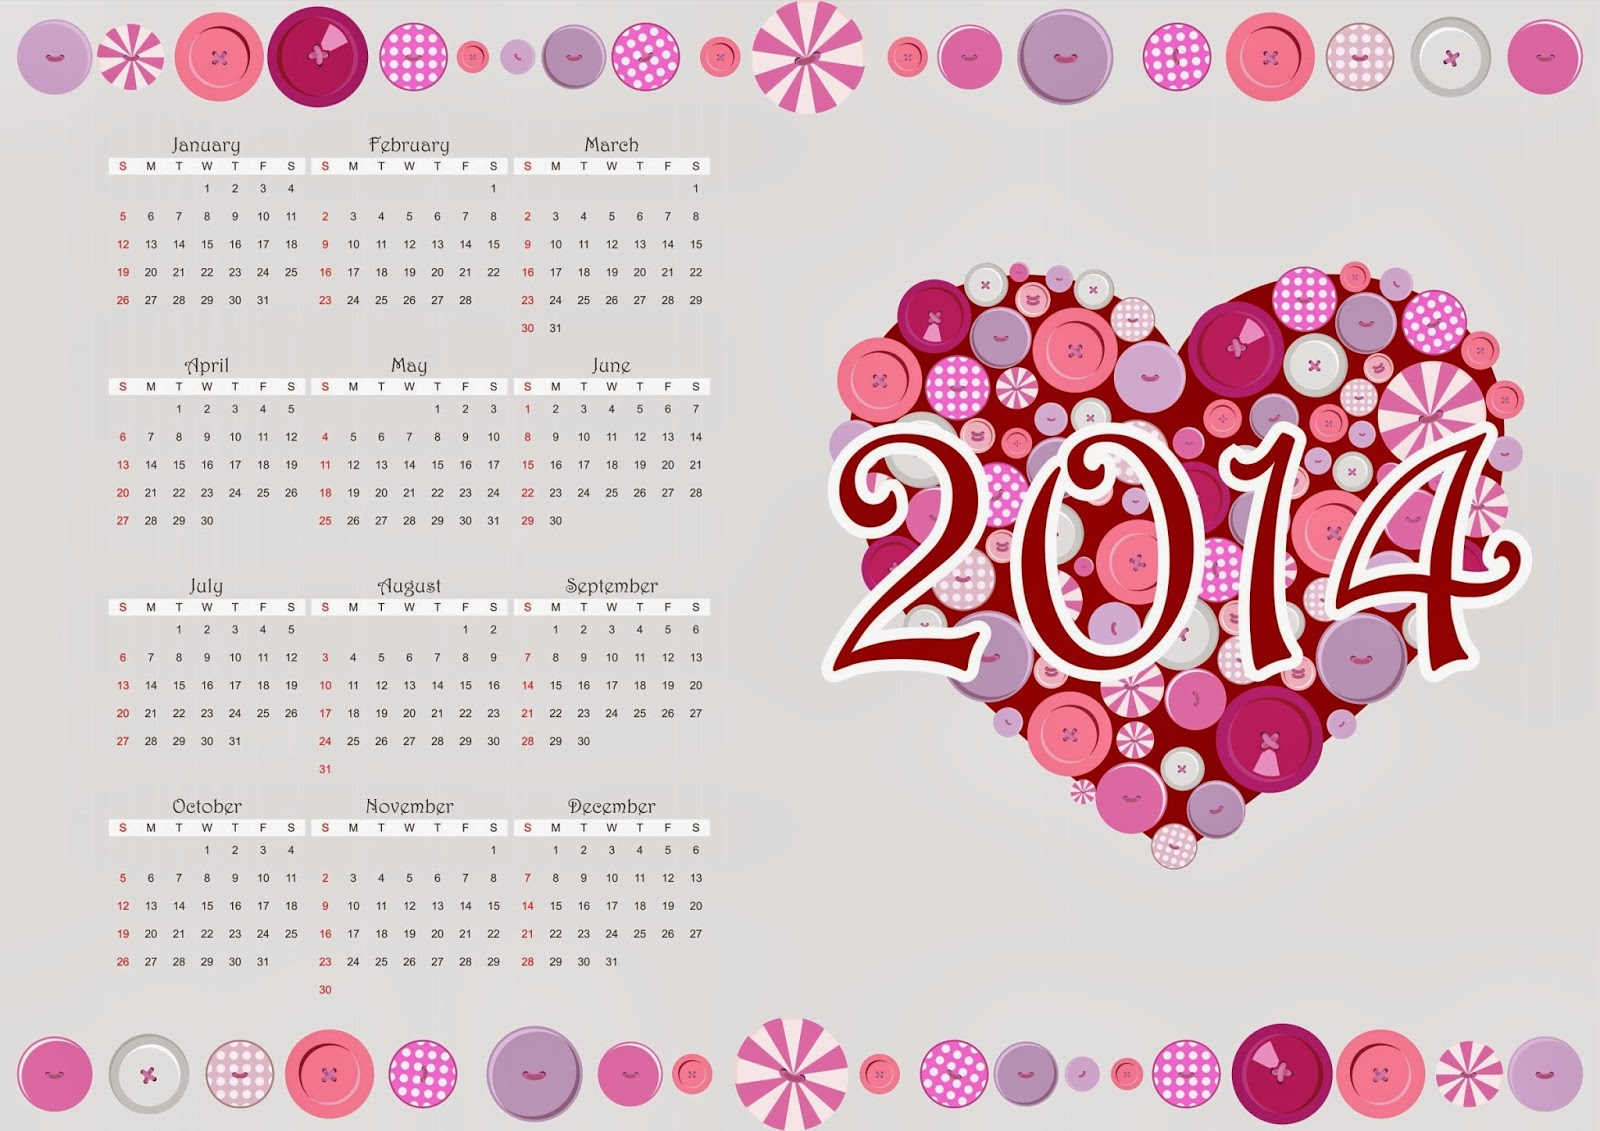 Romantic Happy New Year Wishes Greetings And Calendars To Pamper